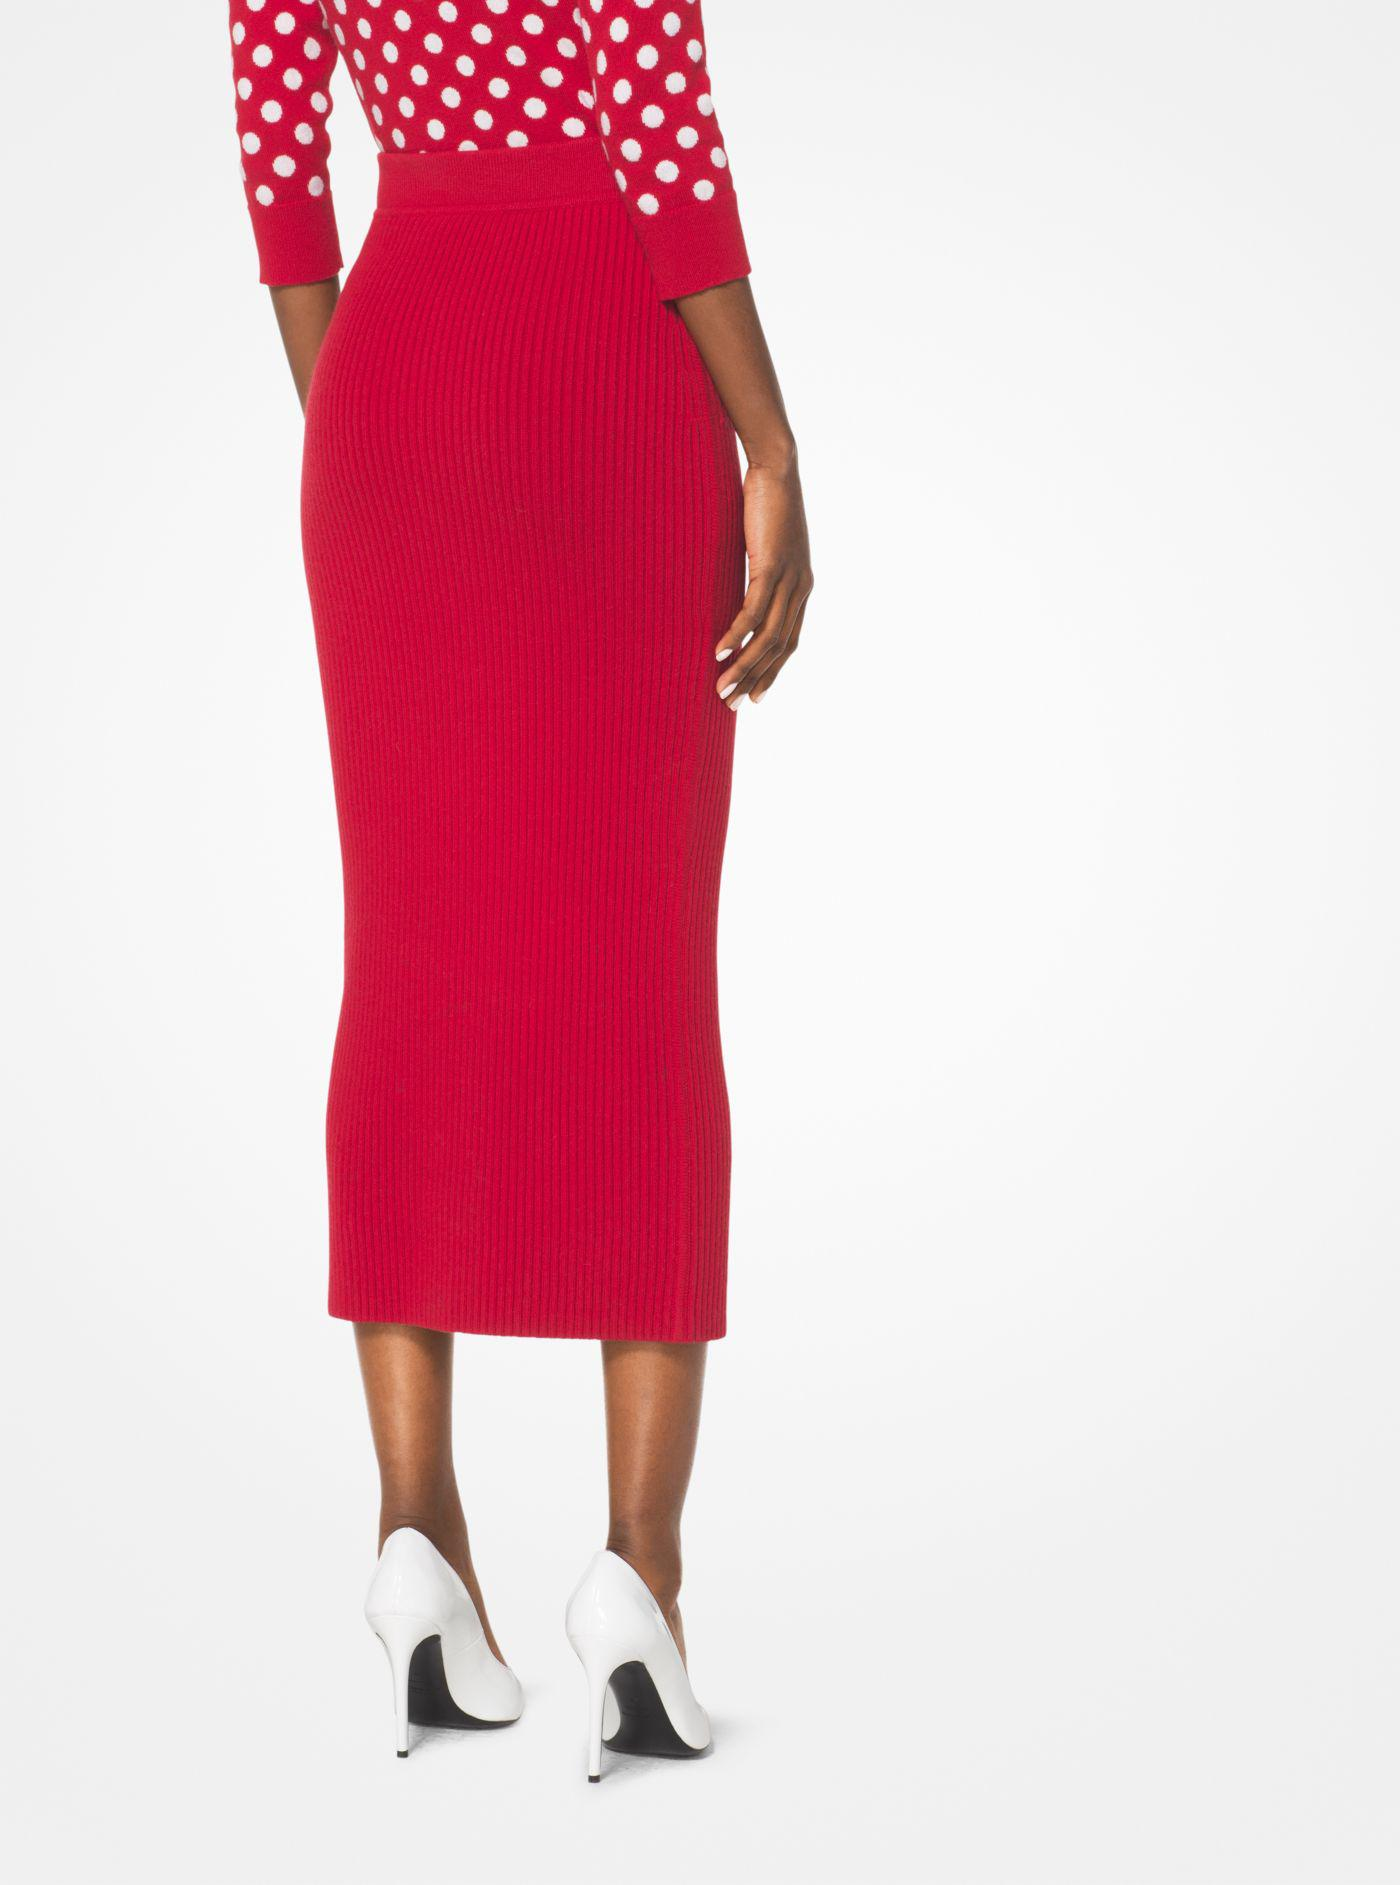 c1ac25e002 Michael Kors Ribbed Cashmere Tube Skirt in Red - Lyst